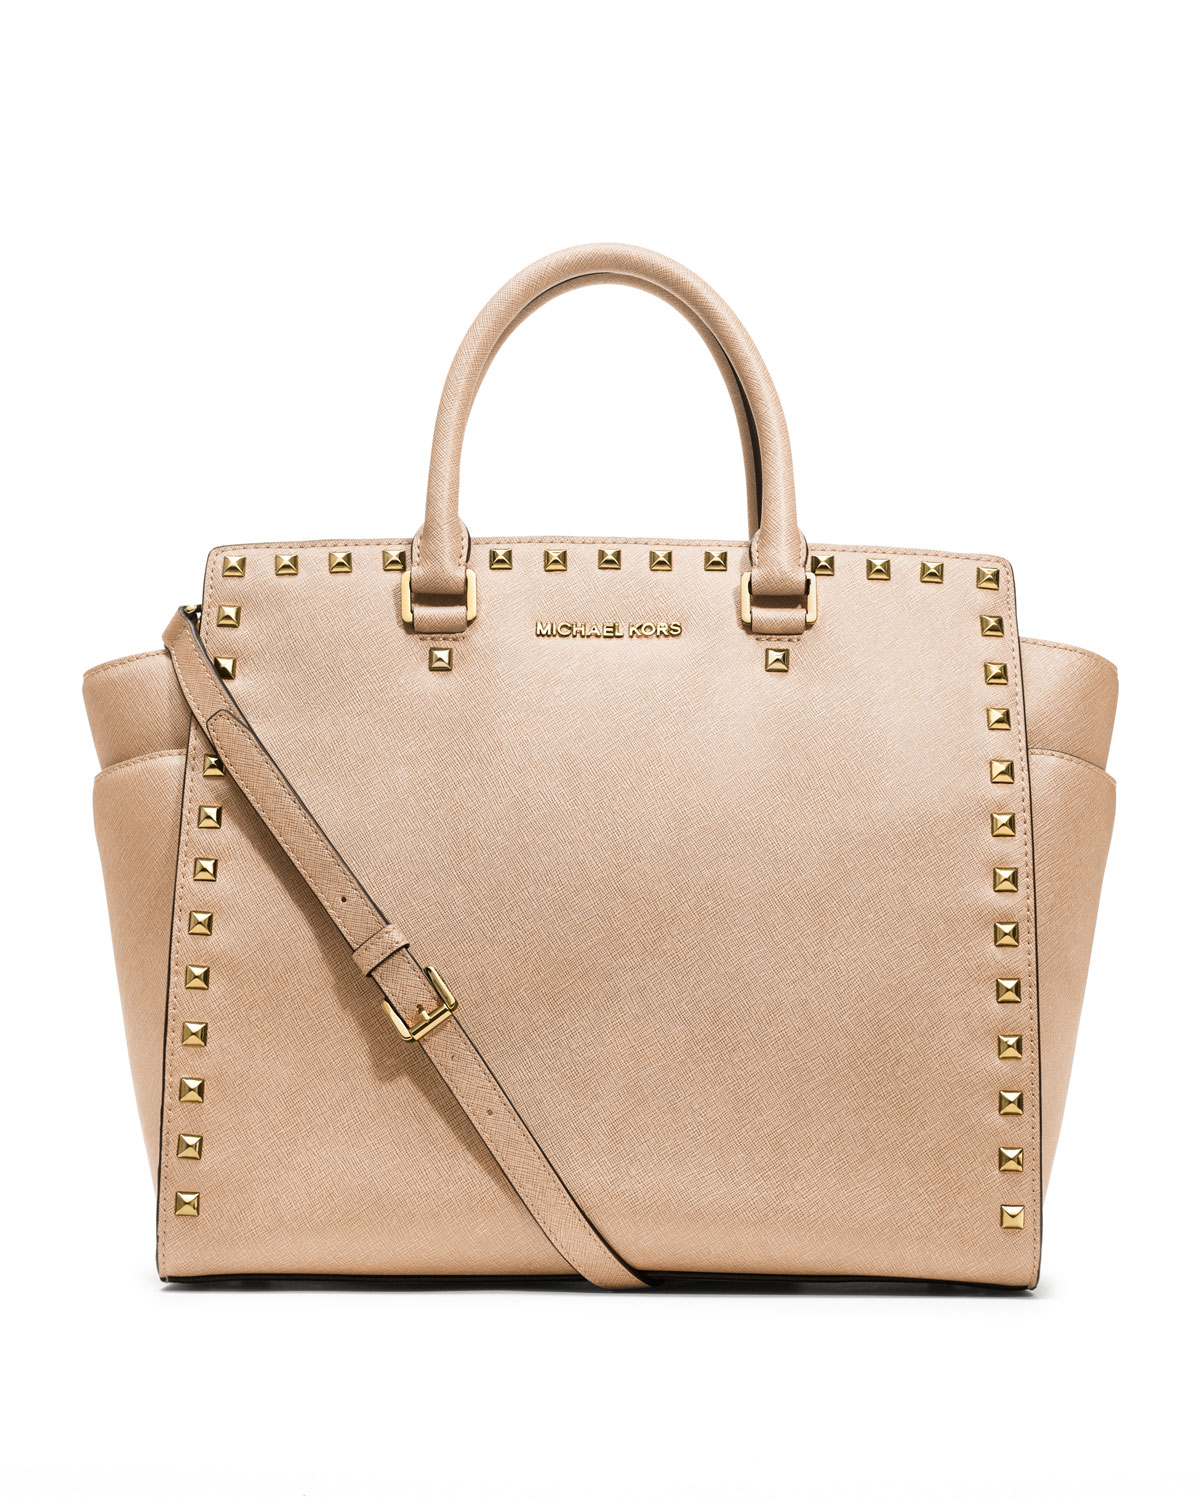 bc0282fac2 Lyst - MICHAEL Michael Kors Large Selma Studded Saffiano Tote in Natural